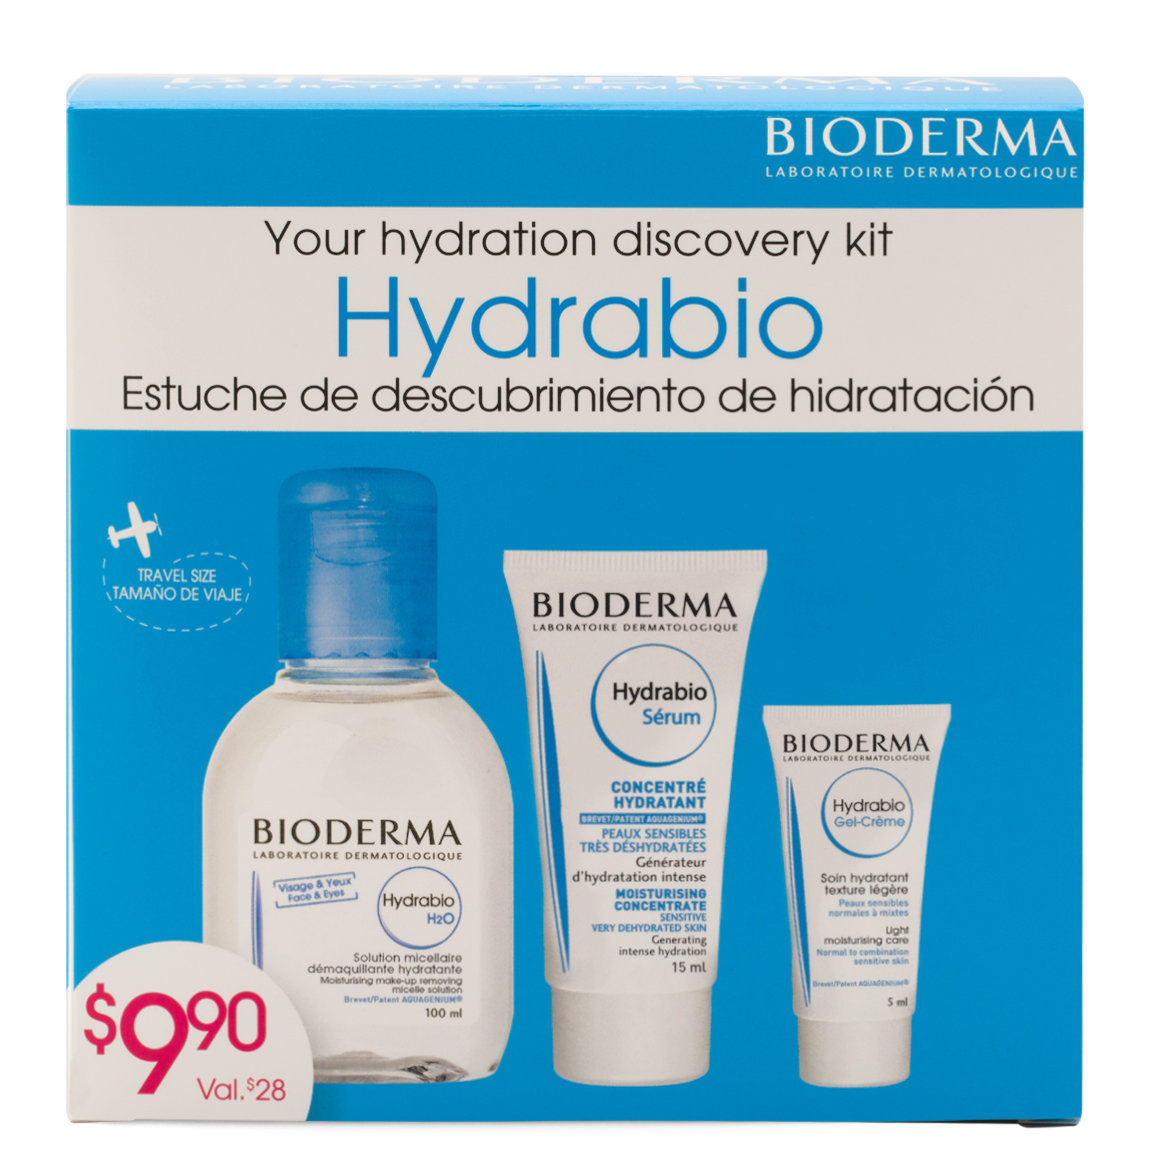 Bioderma The Discovery Set: Hydrabio product swatch.